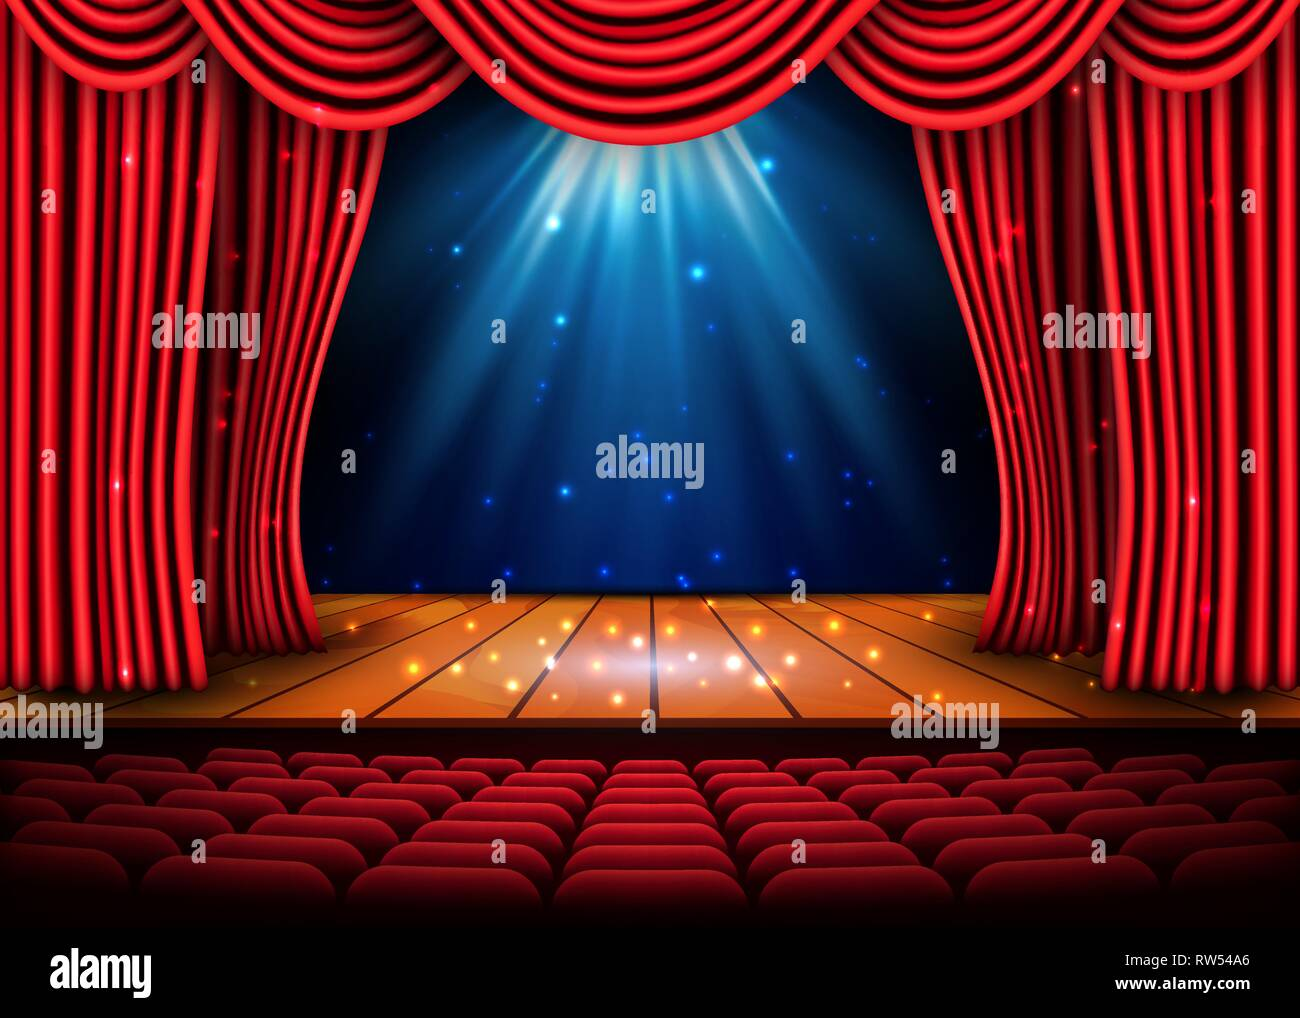 A theater stage with a red curtain and a spotlight and wooden floor. Festival Night Show poster. Vector. - Stock Vector